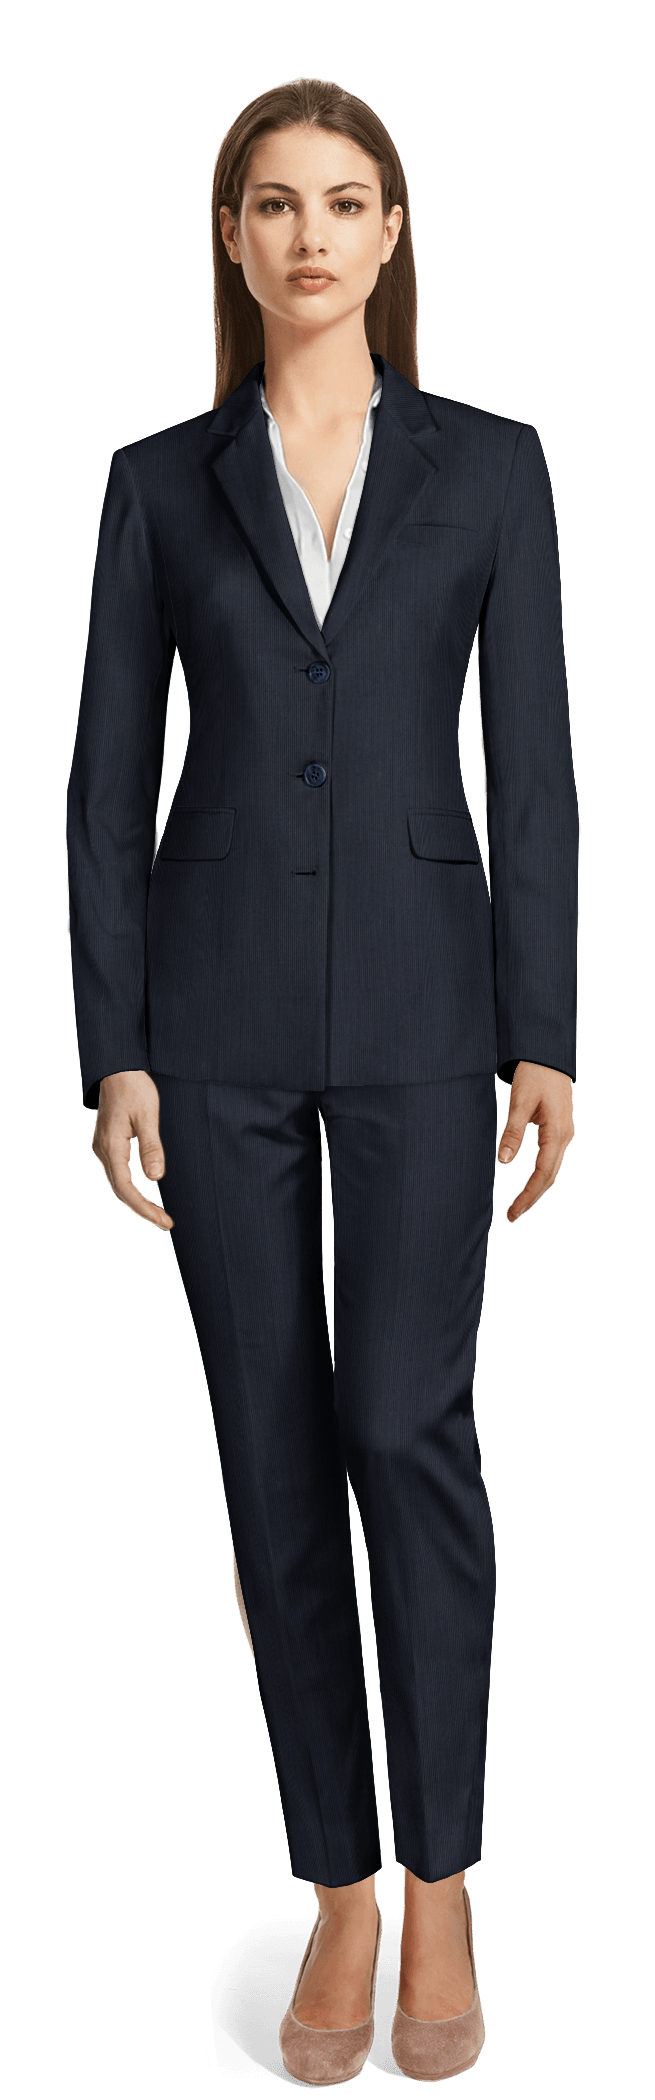 Custom Women Suits Made To Order Sumissura